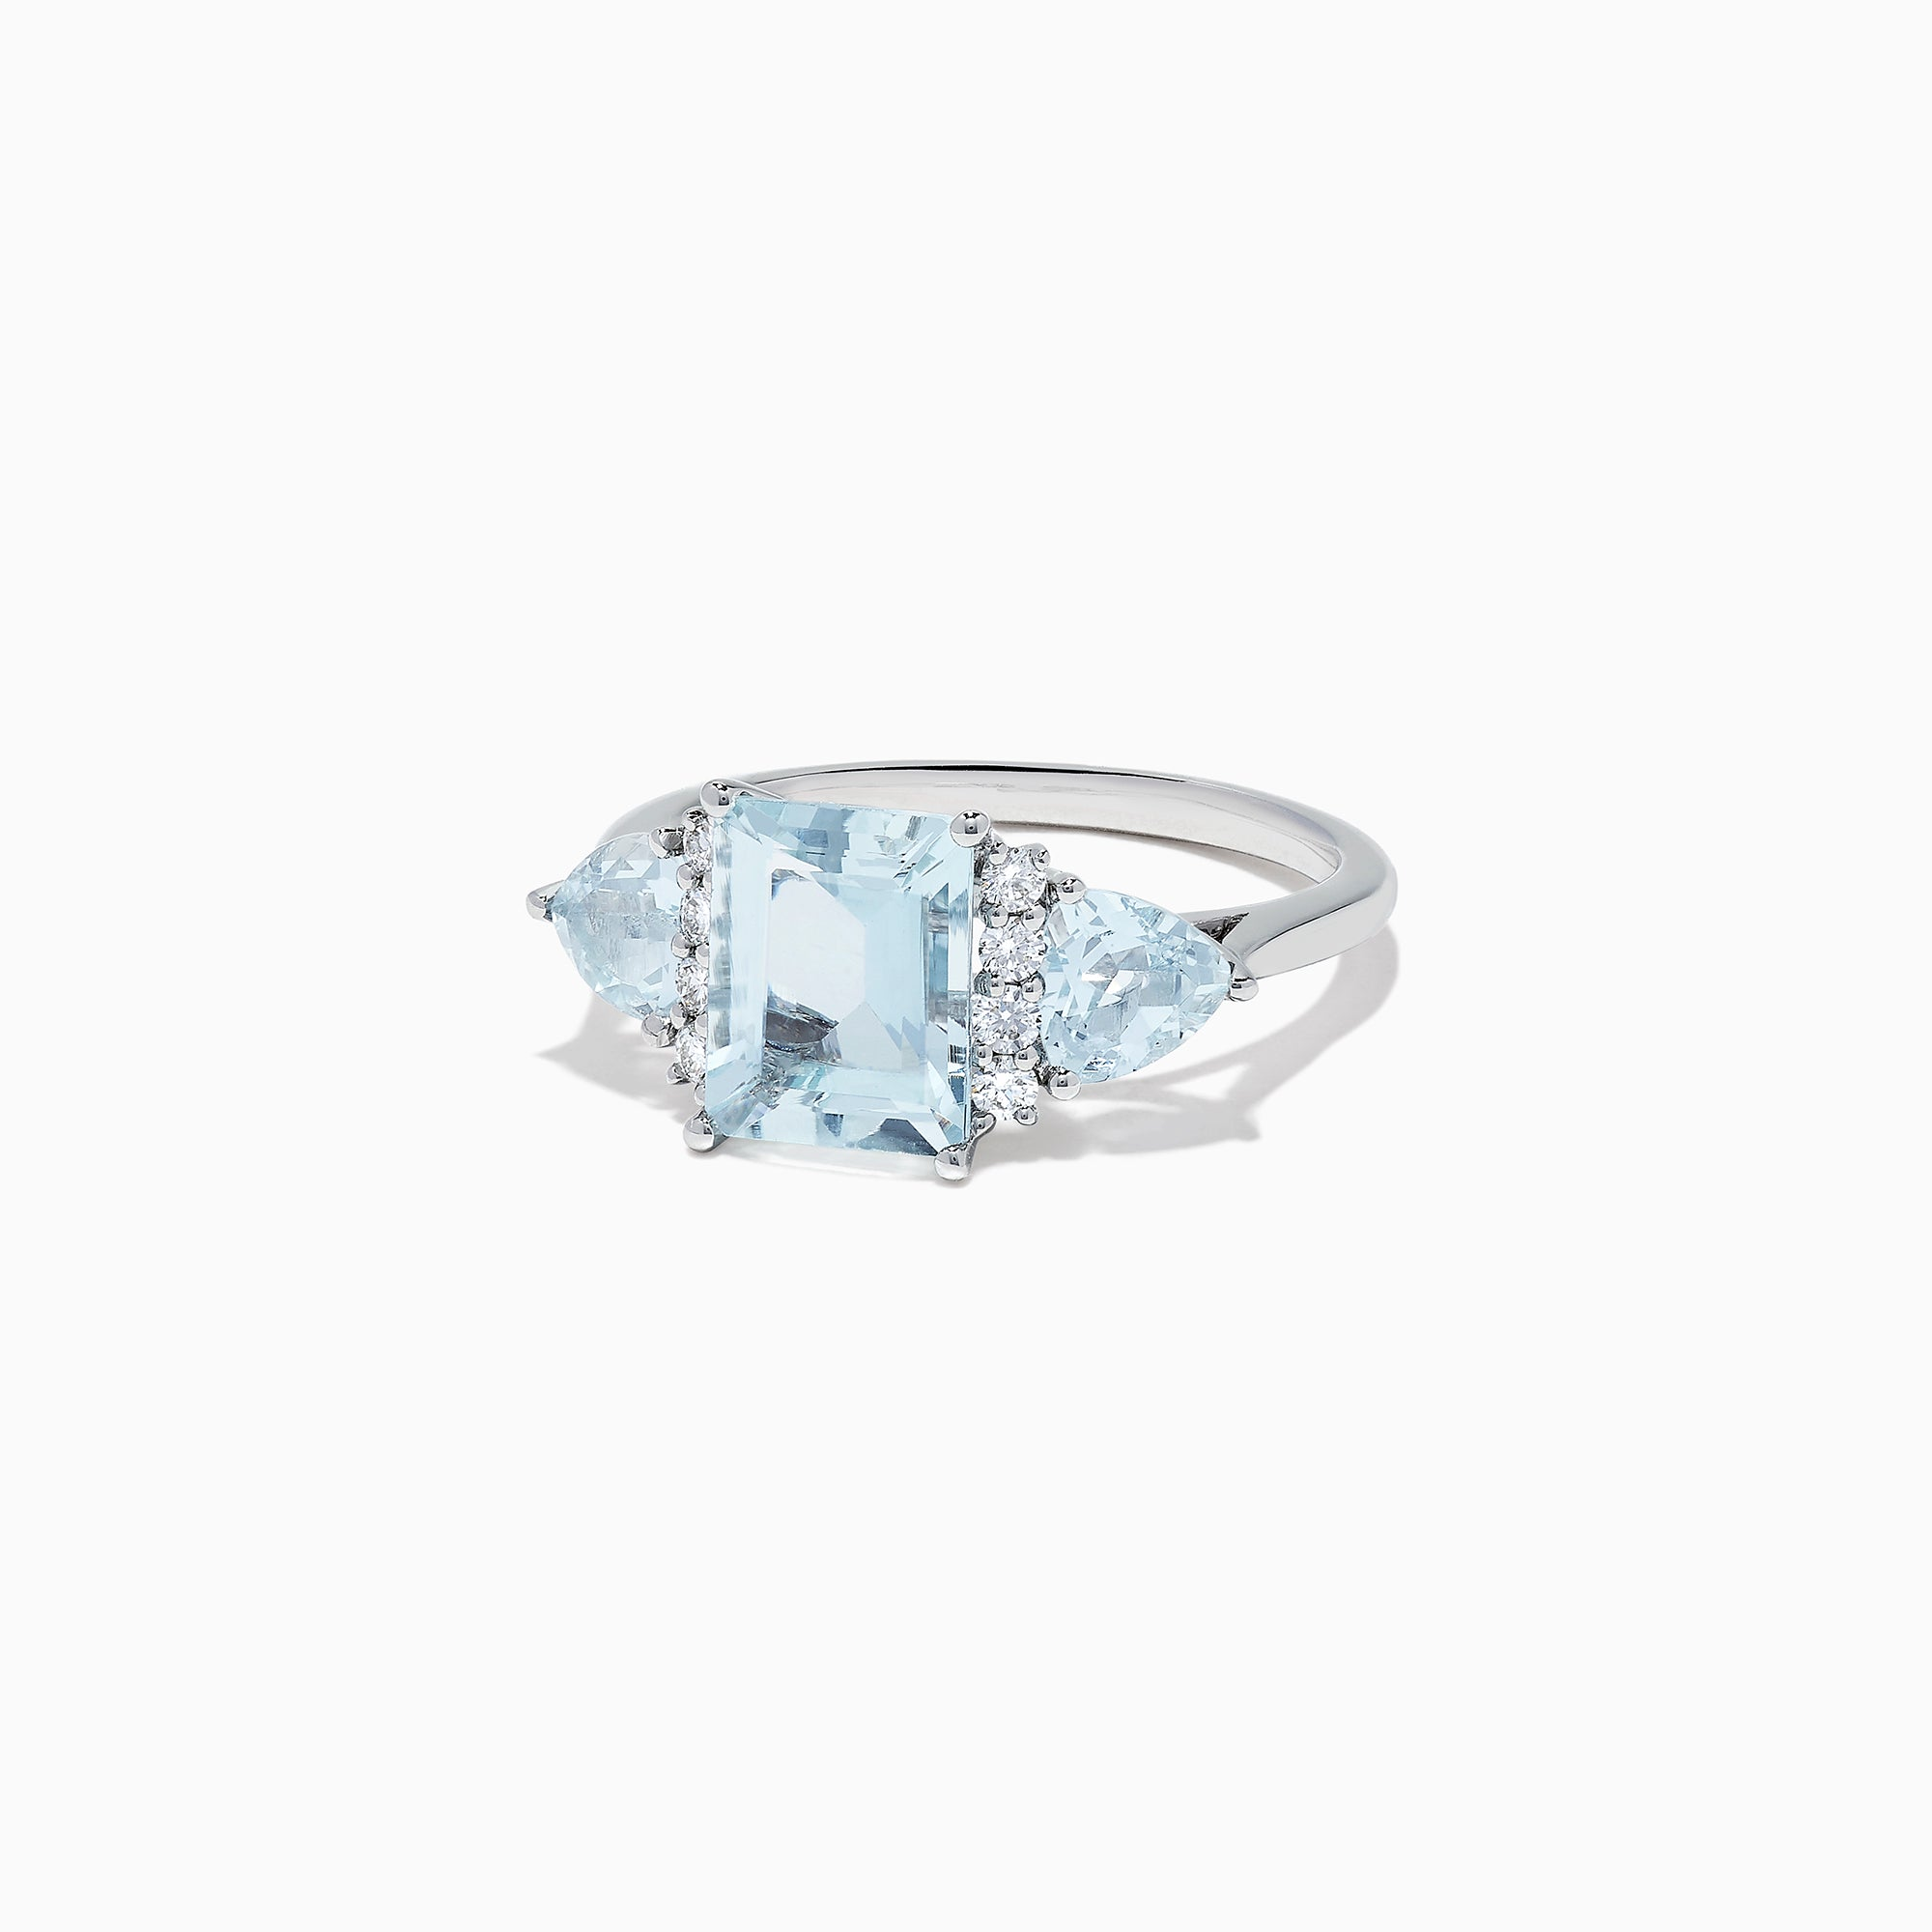 Effy Aquarius 14K White Gold Aquamarine and Diamond Ring, 3.30 TCW